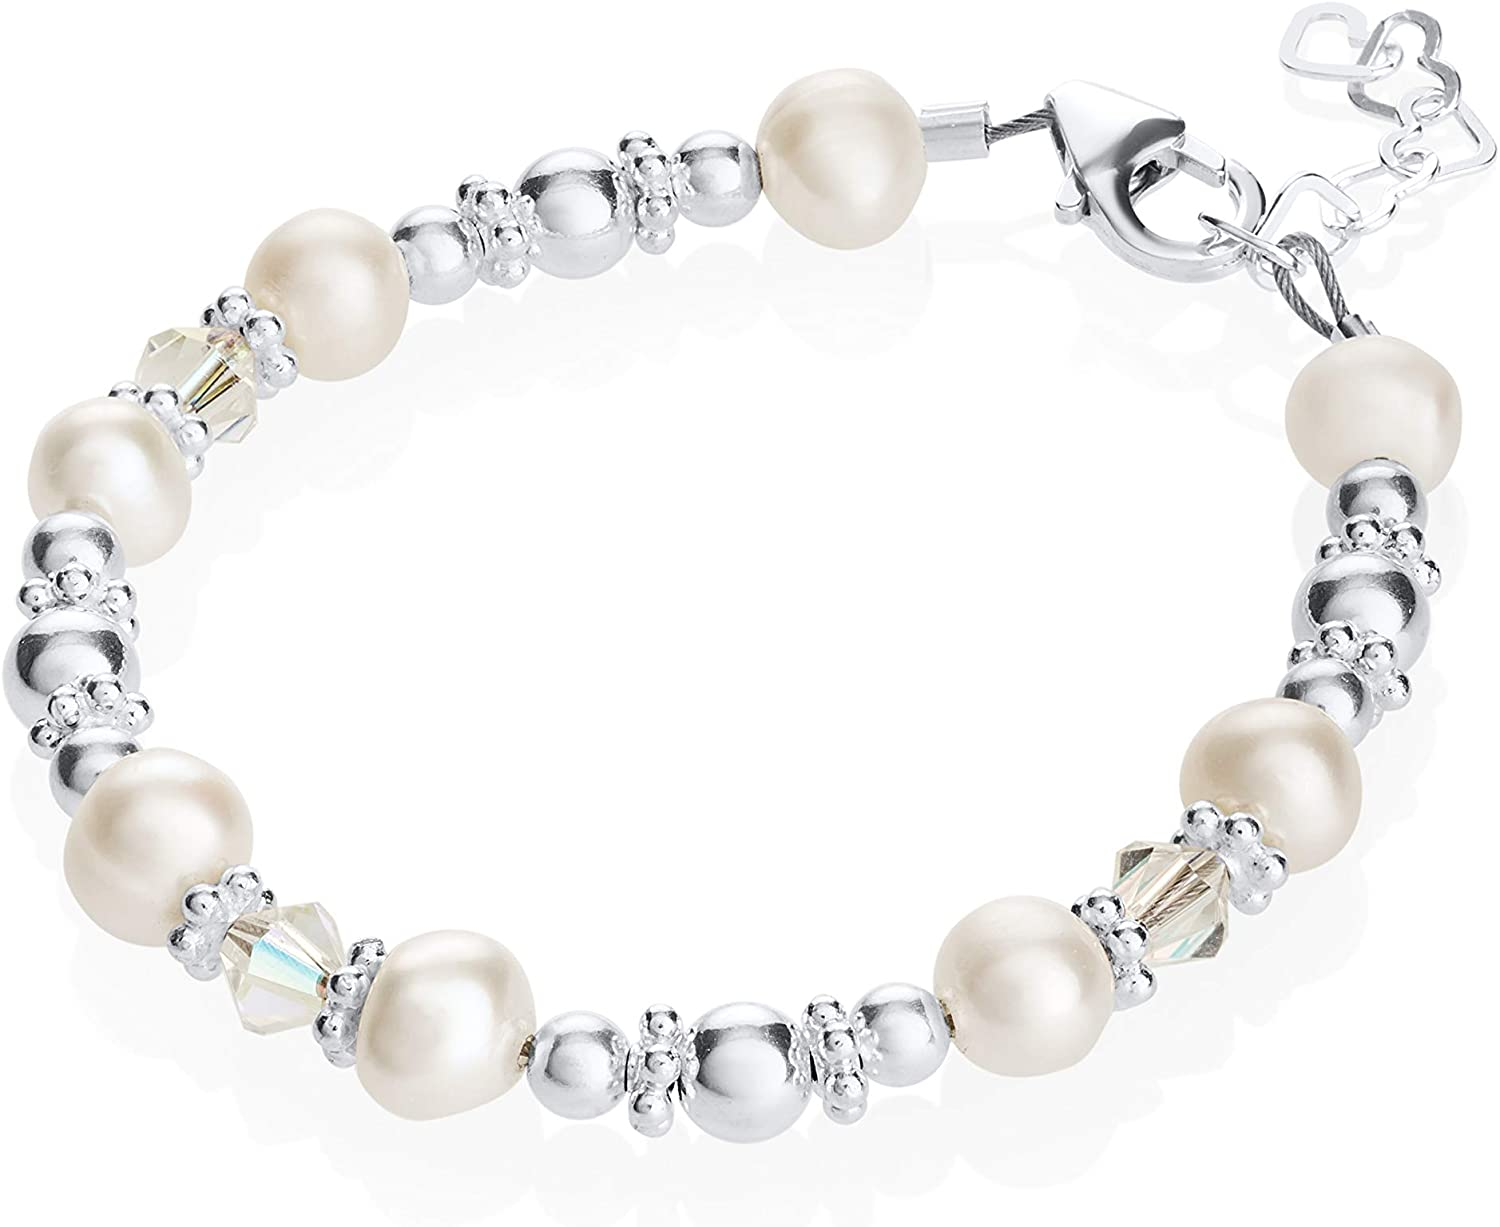 G white Beautiful /& Cvreative Like frosted Met finish semi Round 11mm  16 inch Natural Fresh water Pearl